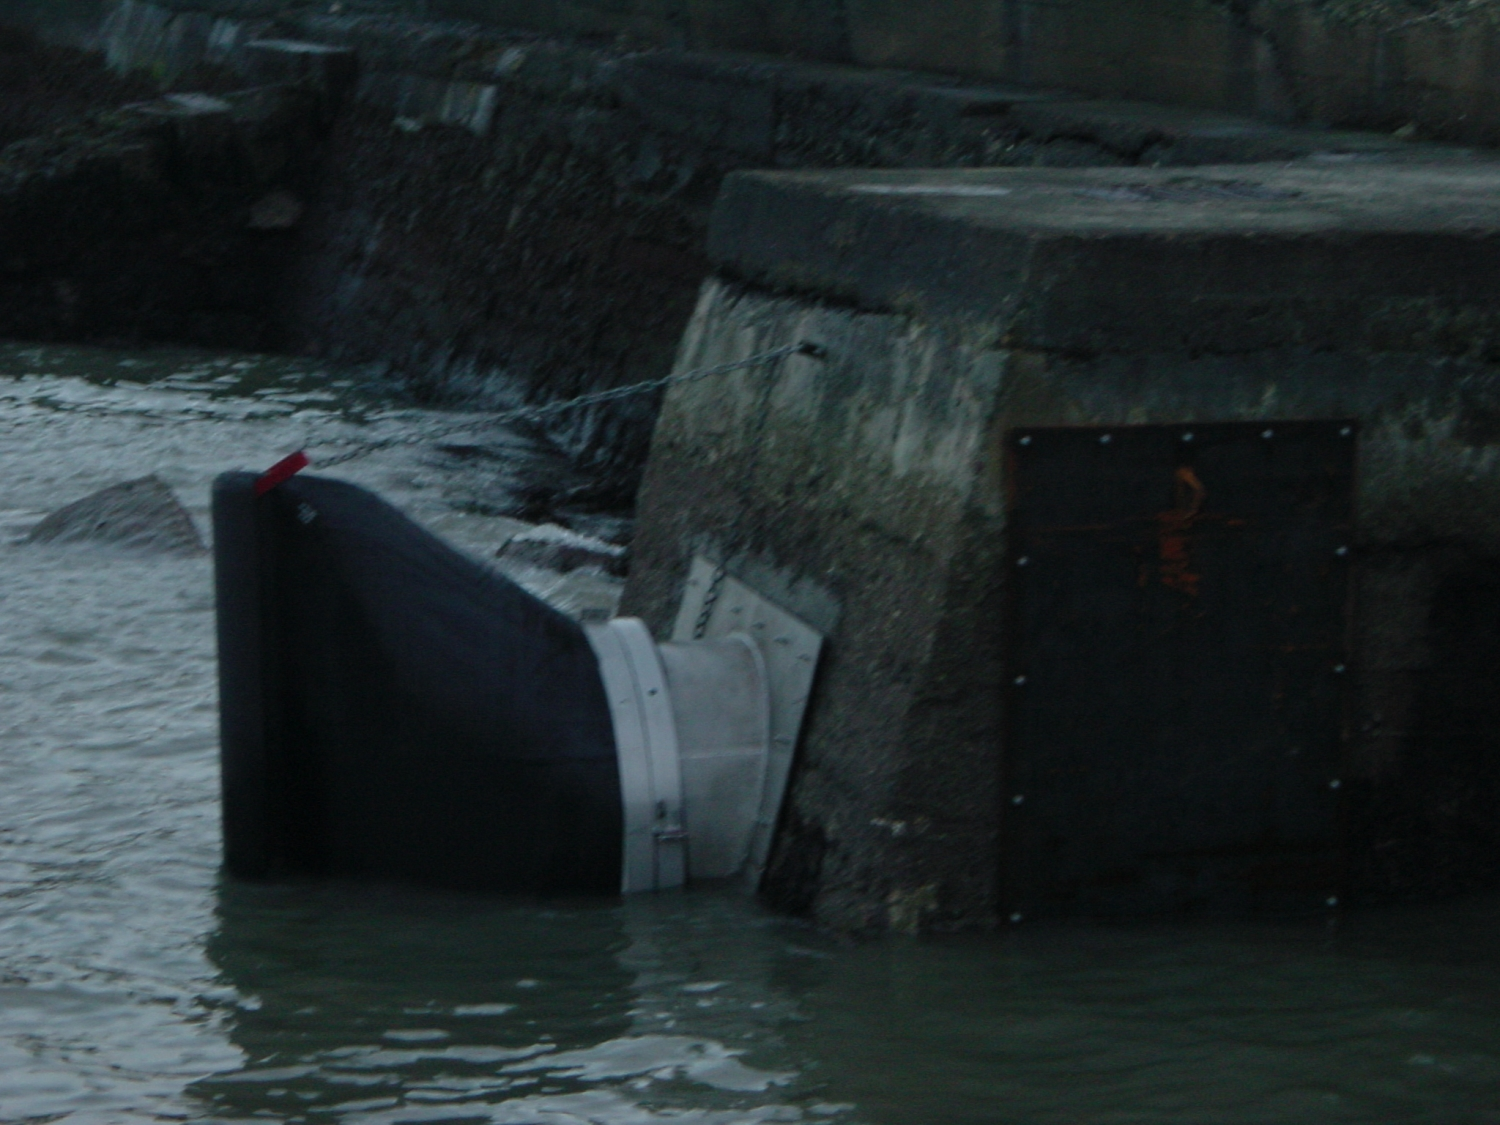 Tideflex check valve being submerged as the tide rises